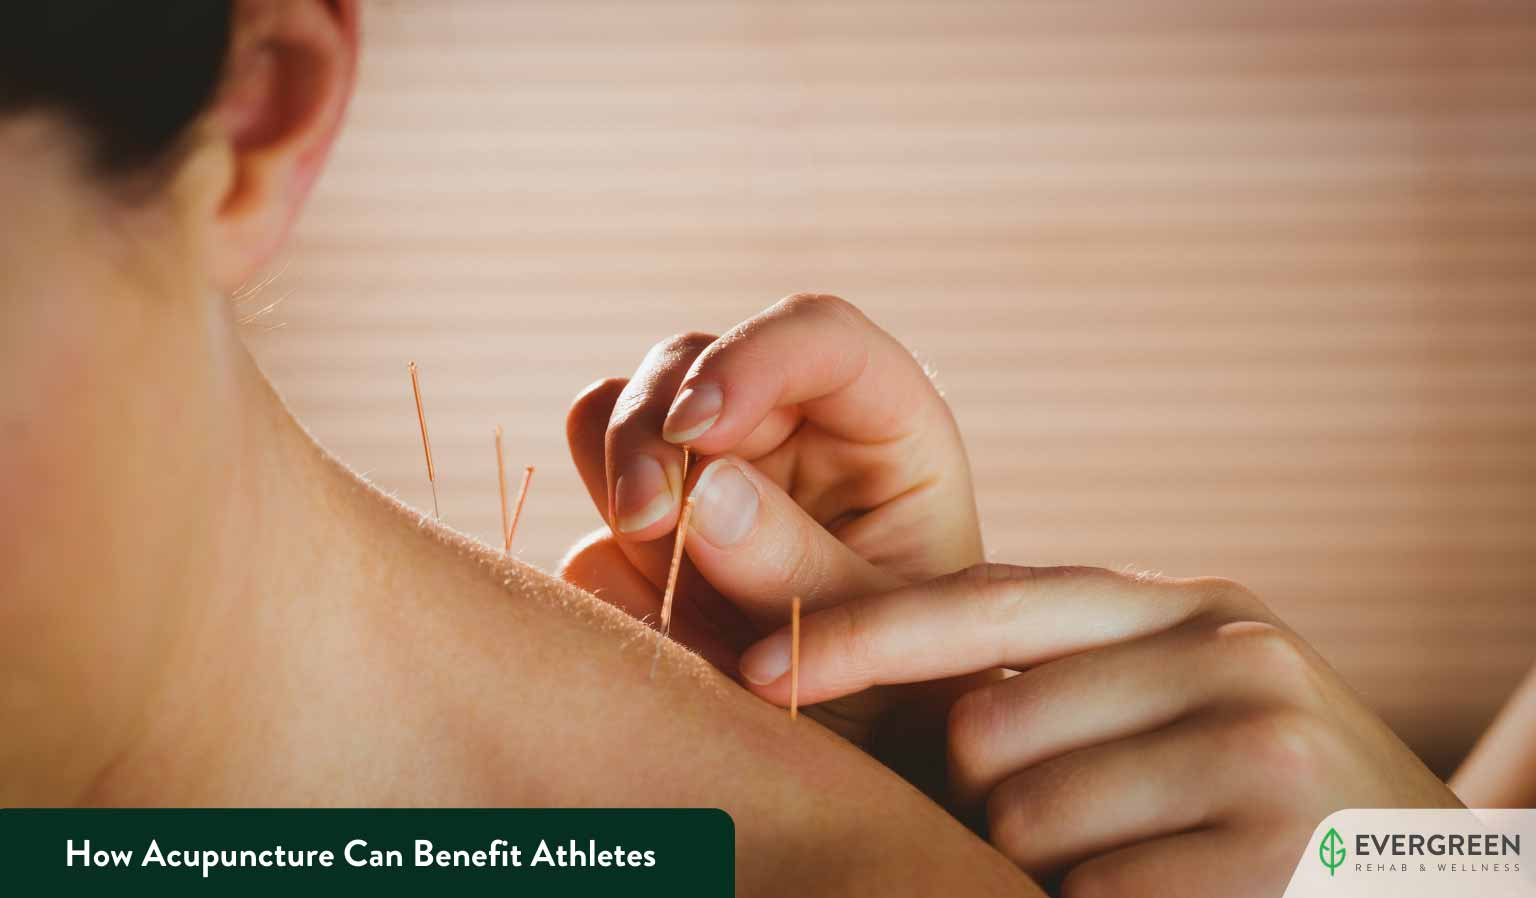 How Acupuncture Can Benefit Athletes